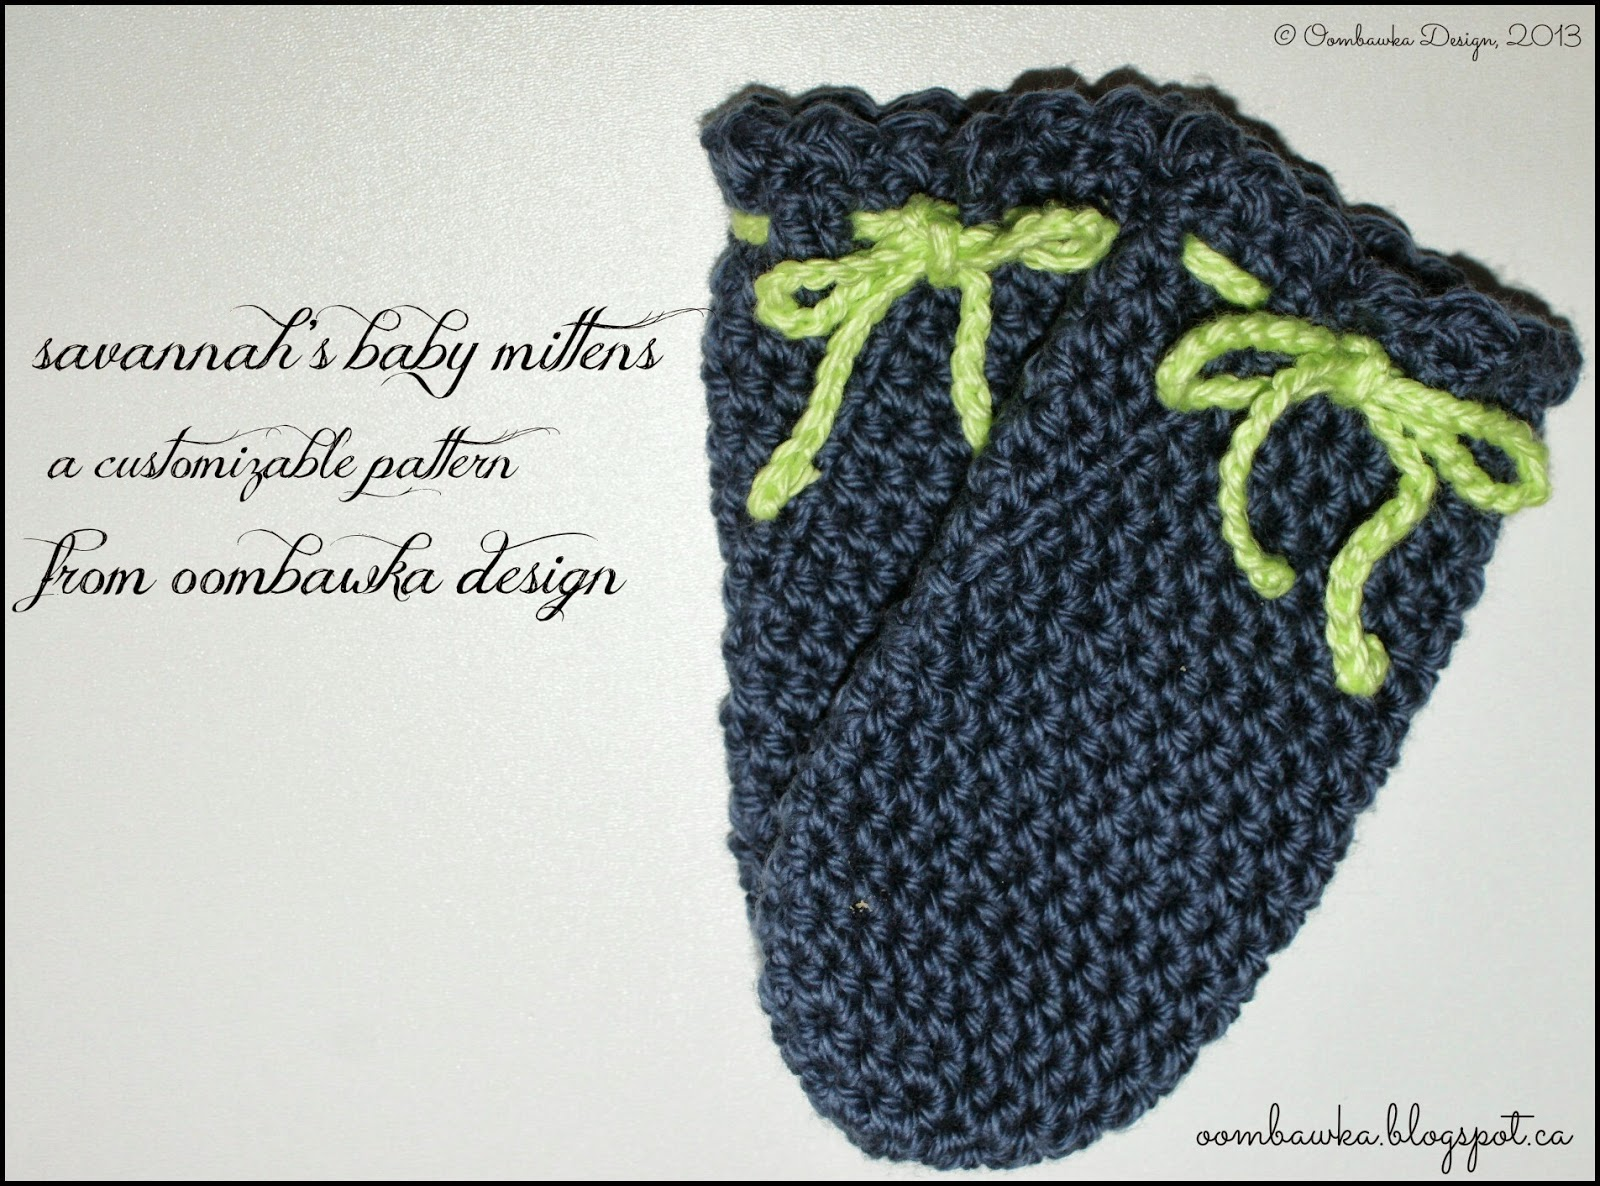 Crochet Pattern For Newborn Baby Sweater : Oombawka Design *Crochet*